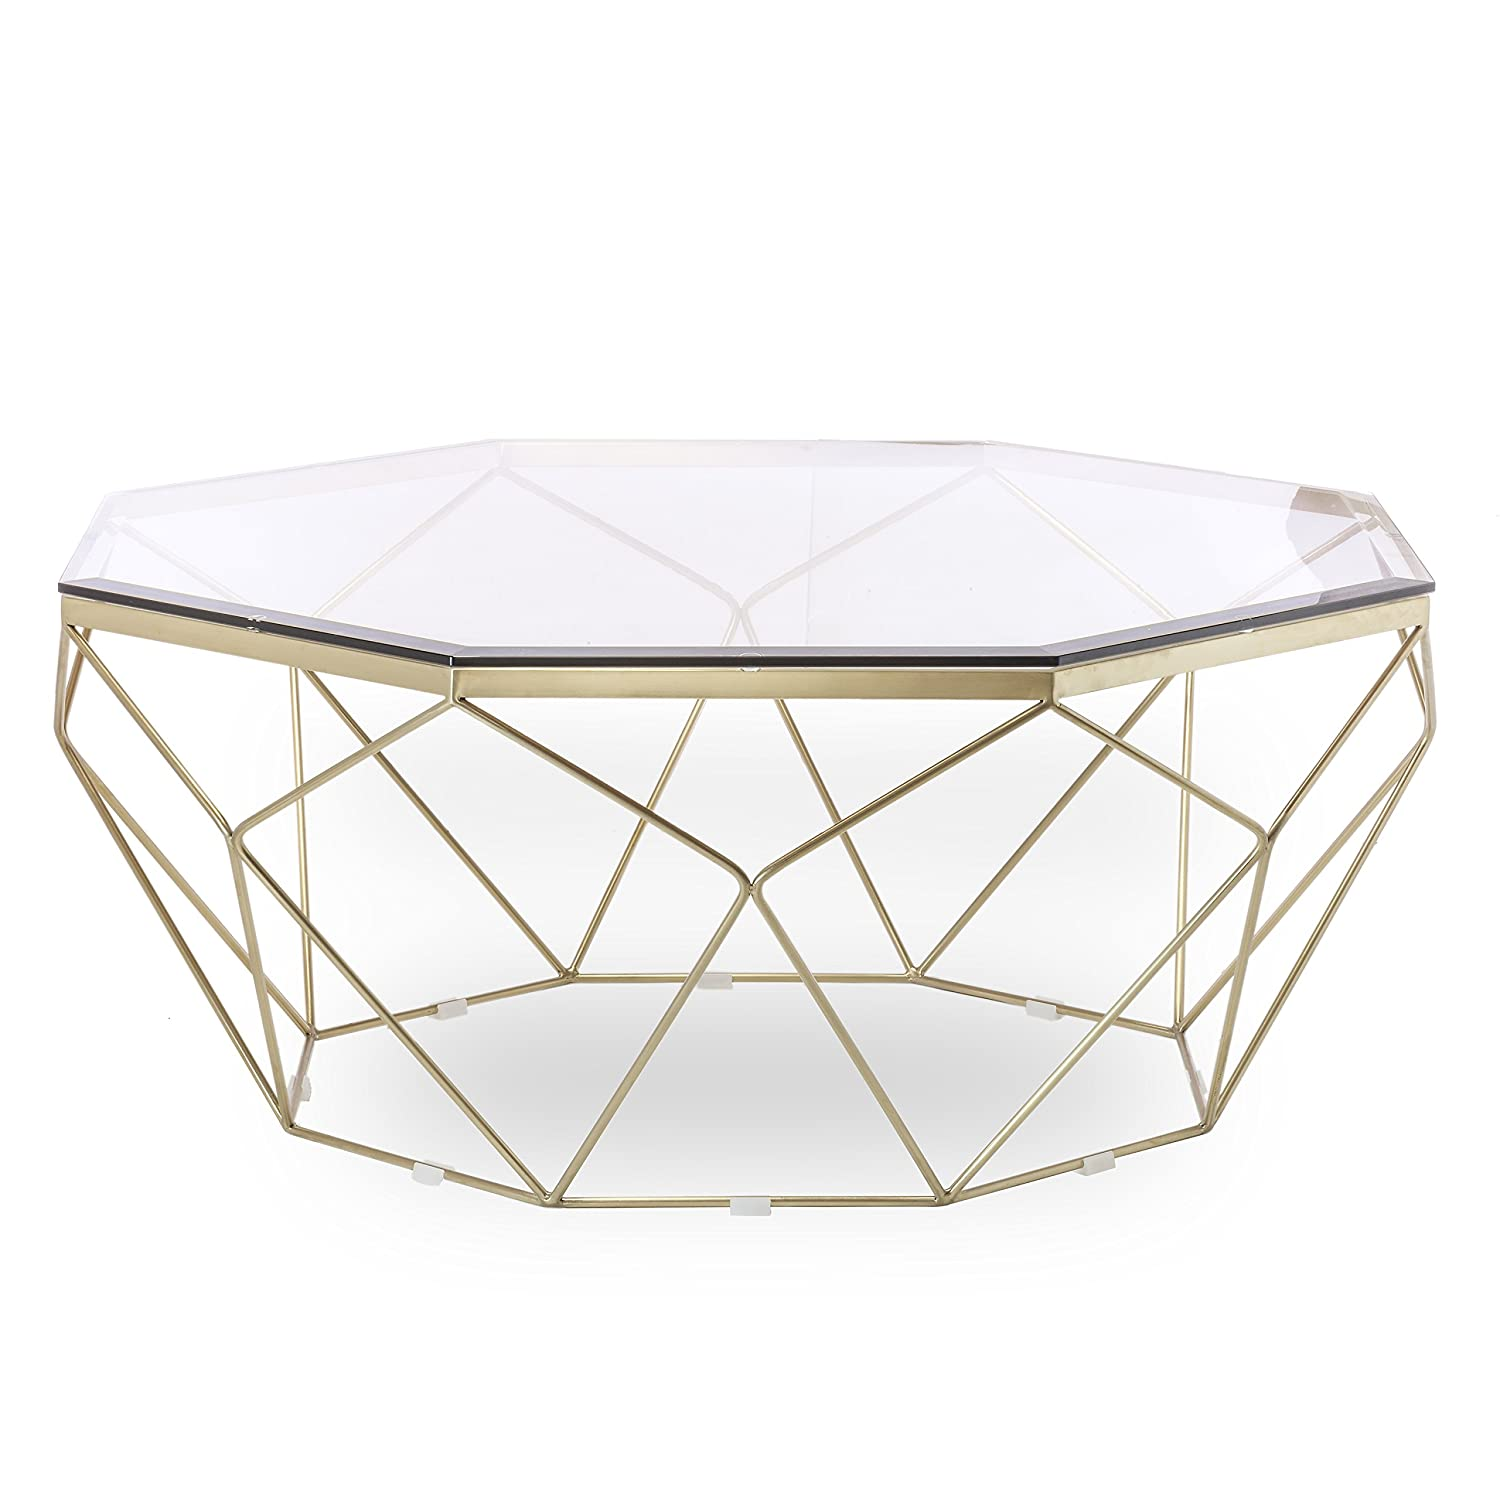 Tremendous Amazon Com Design Tree Home Esme Geometric Coffee Table Inzonedesignstudio Interior Chair Design Inzonedesignstudiocom